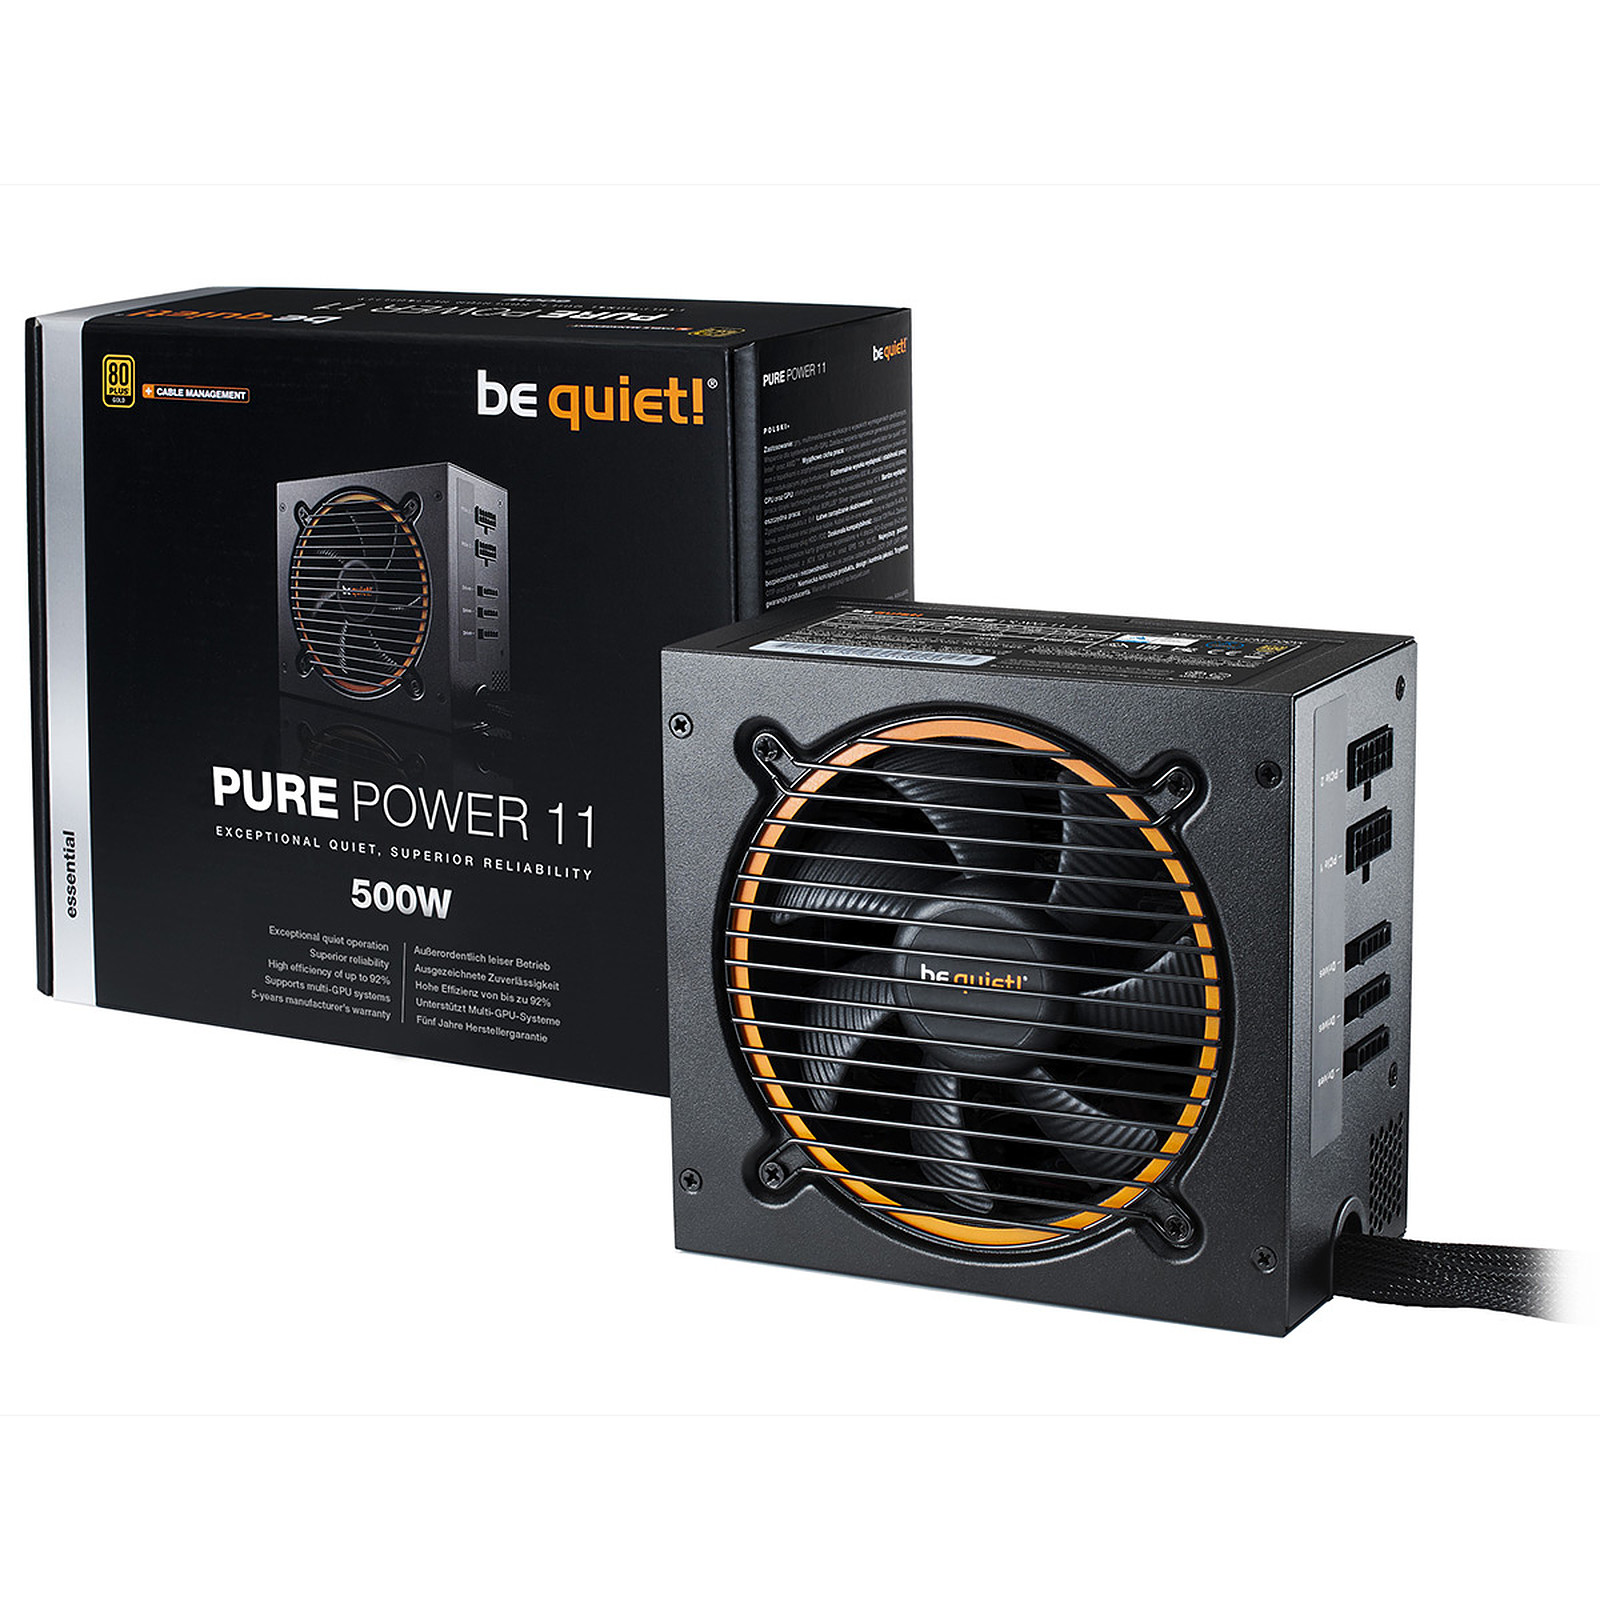 be quiet! Pure Power 11 500W CM 80PLUS Gold